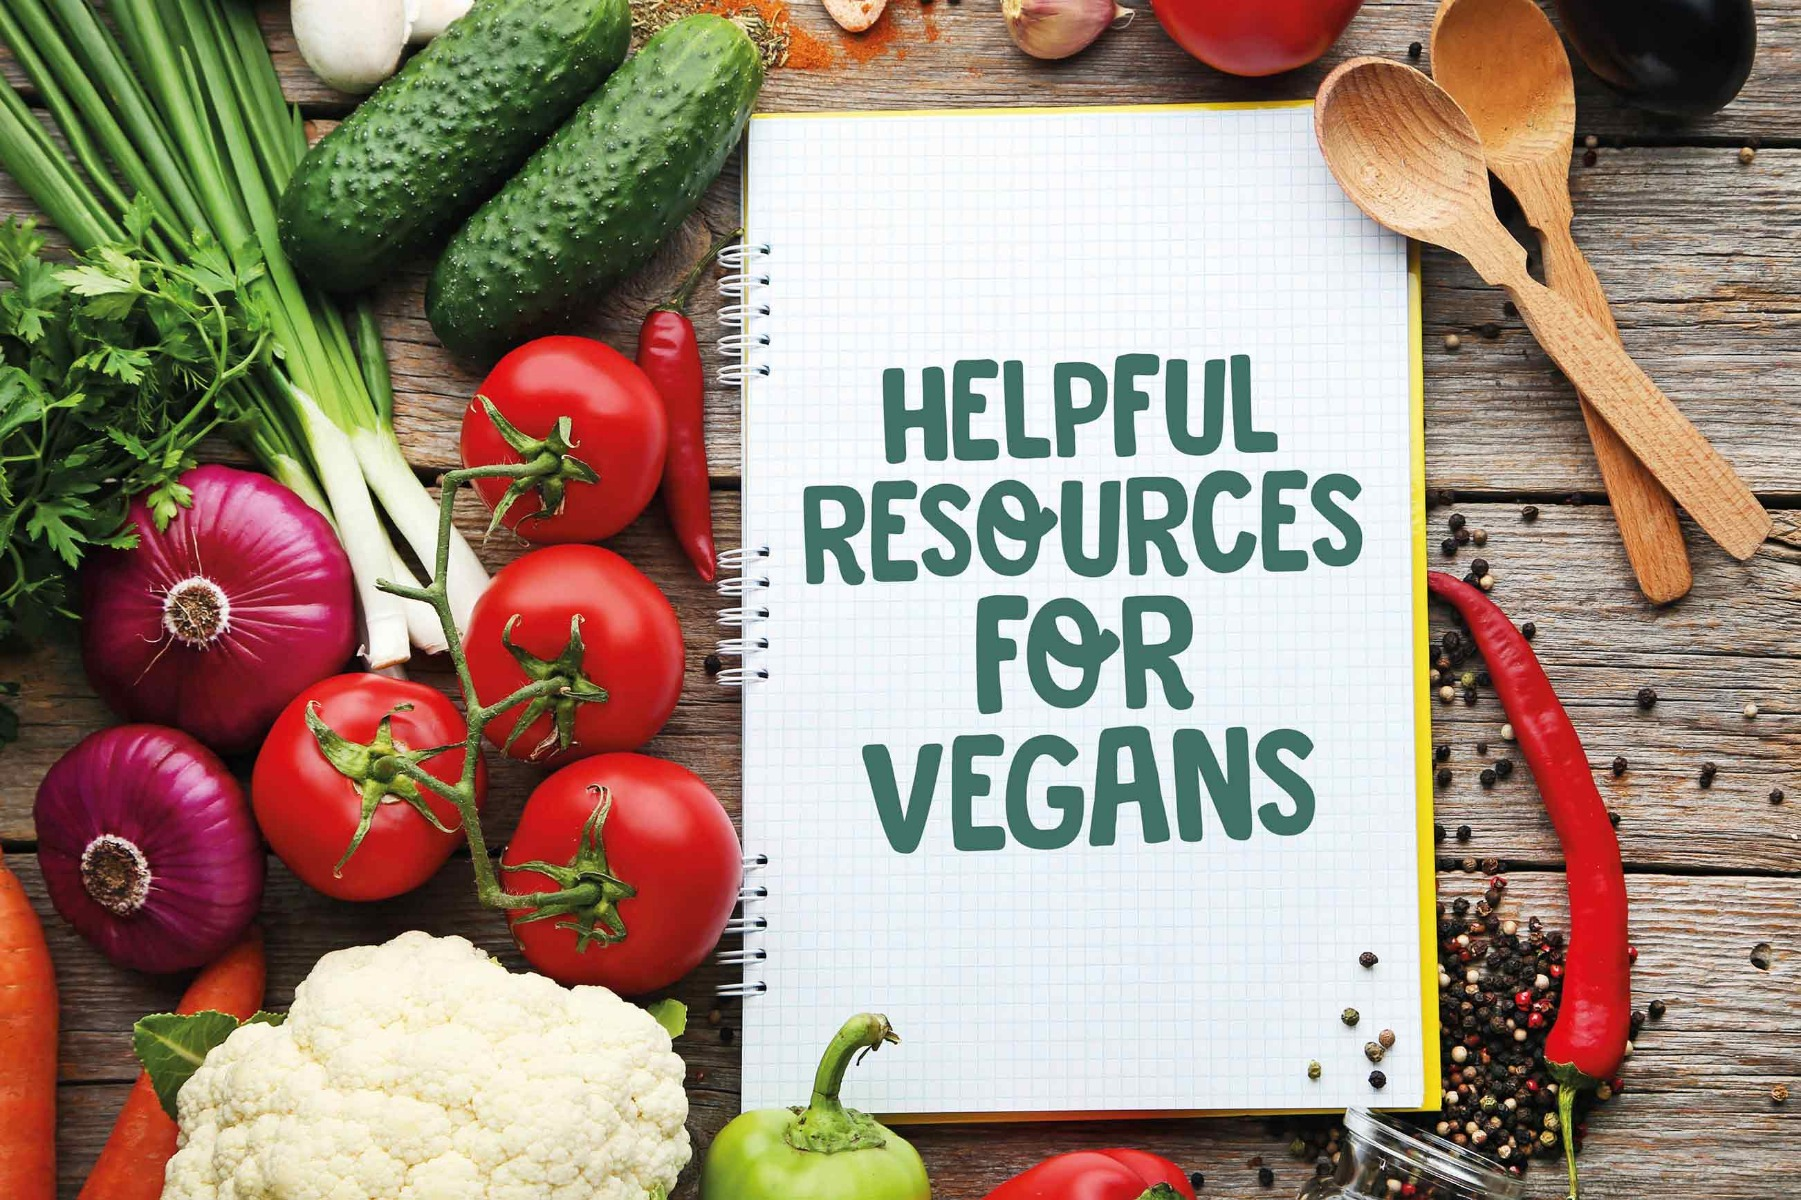 Helpful resources for vegans